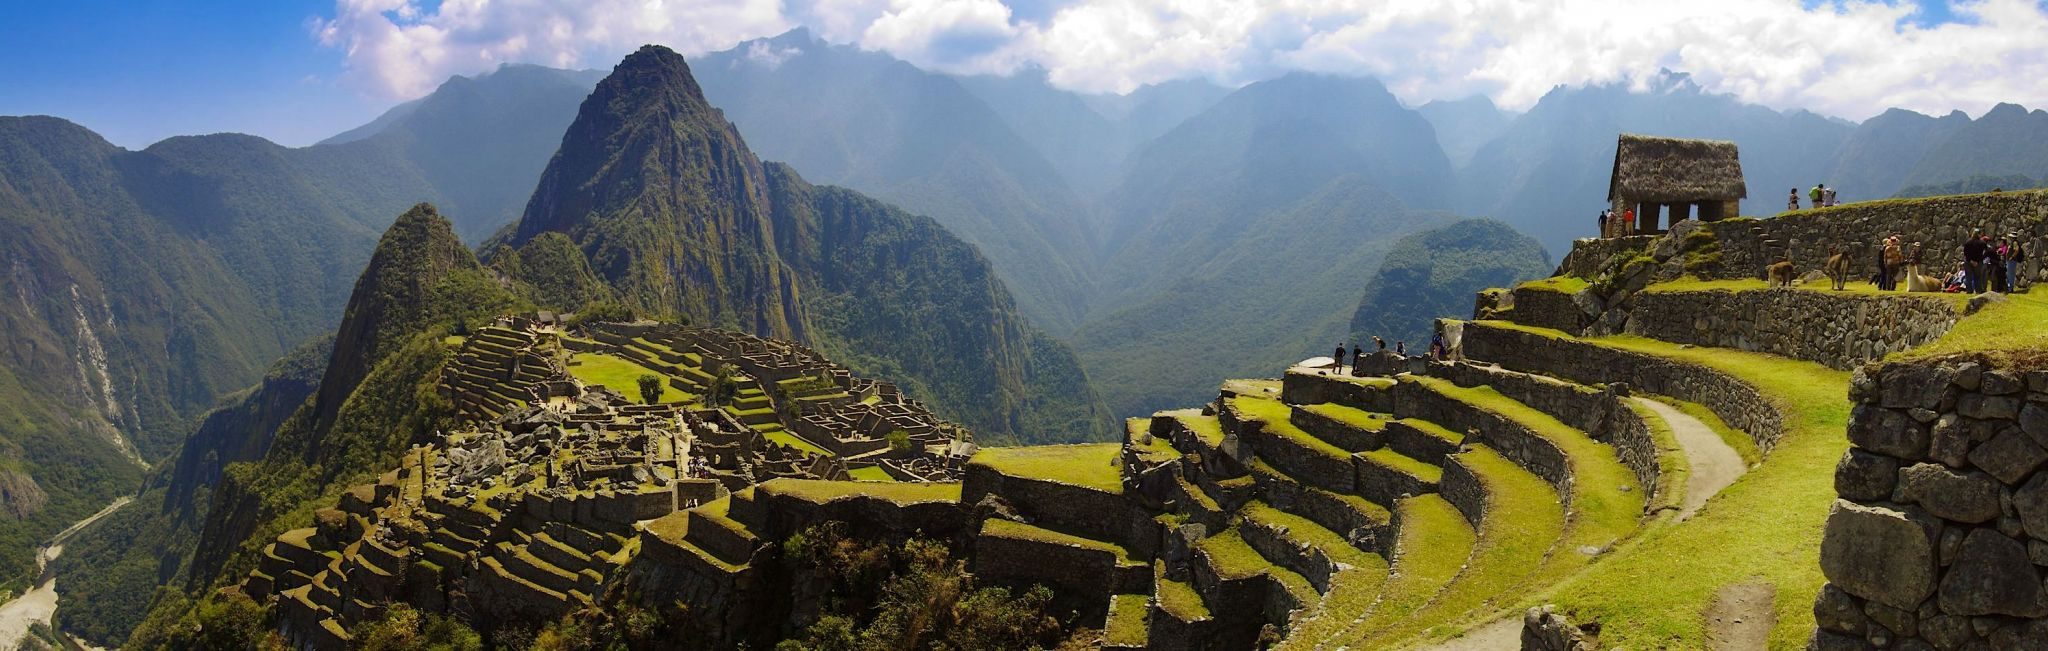 peru-machu-picchu-guard-house-and-wayna-picchu-pano_ltl